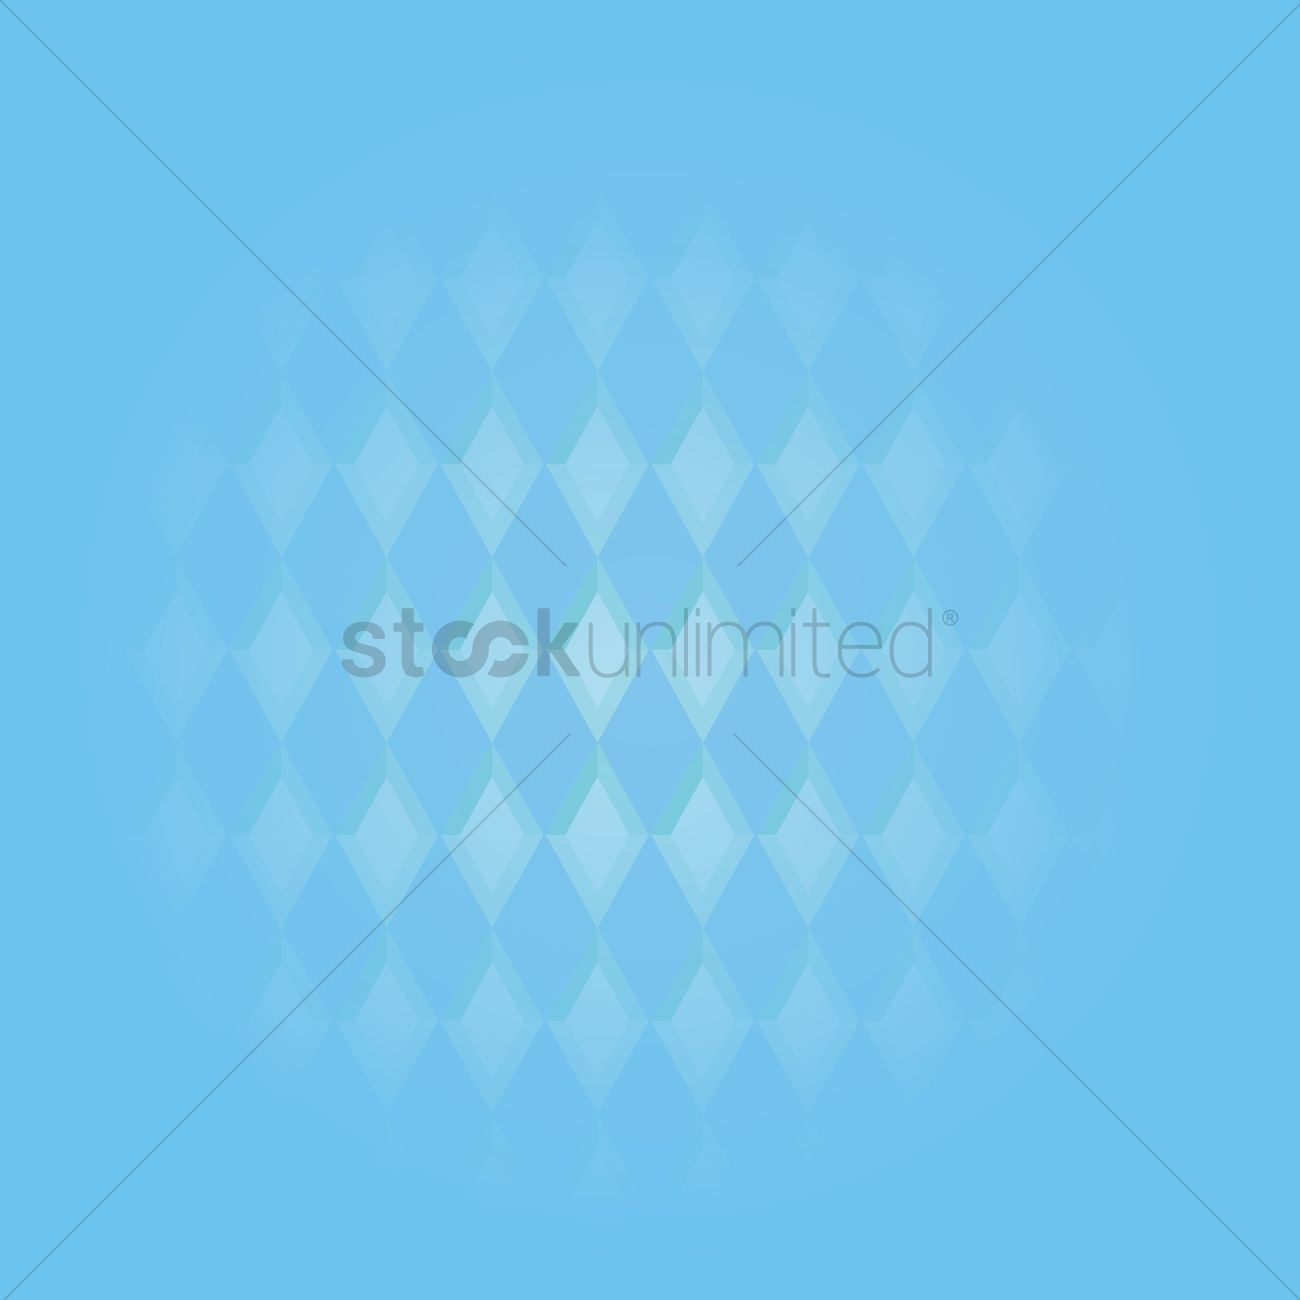 Abstract diamond background Vector Image - 1559101